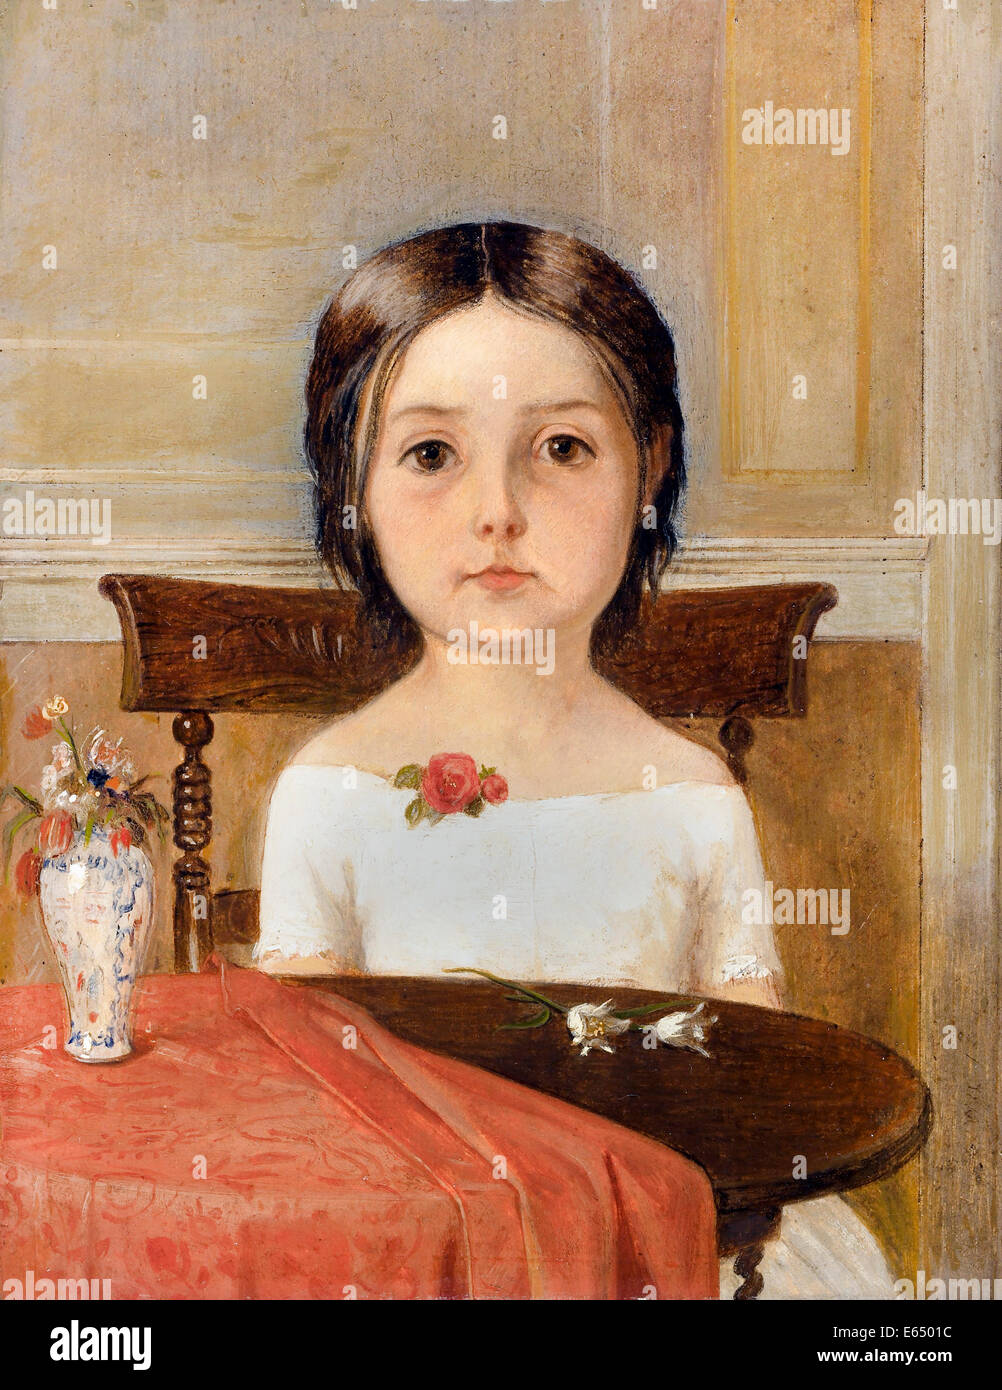 Ford Madox Brown, Millie Smith 1846 Oil on paper. Walker Art Gallery, Liverpool, England. - Stock Image